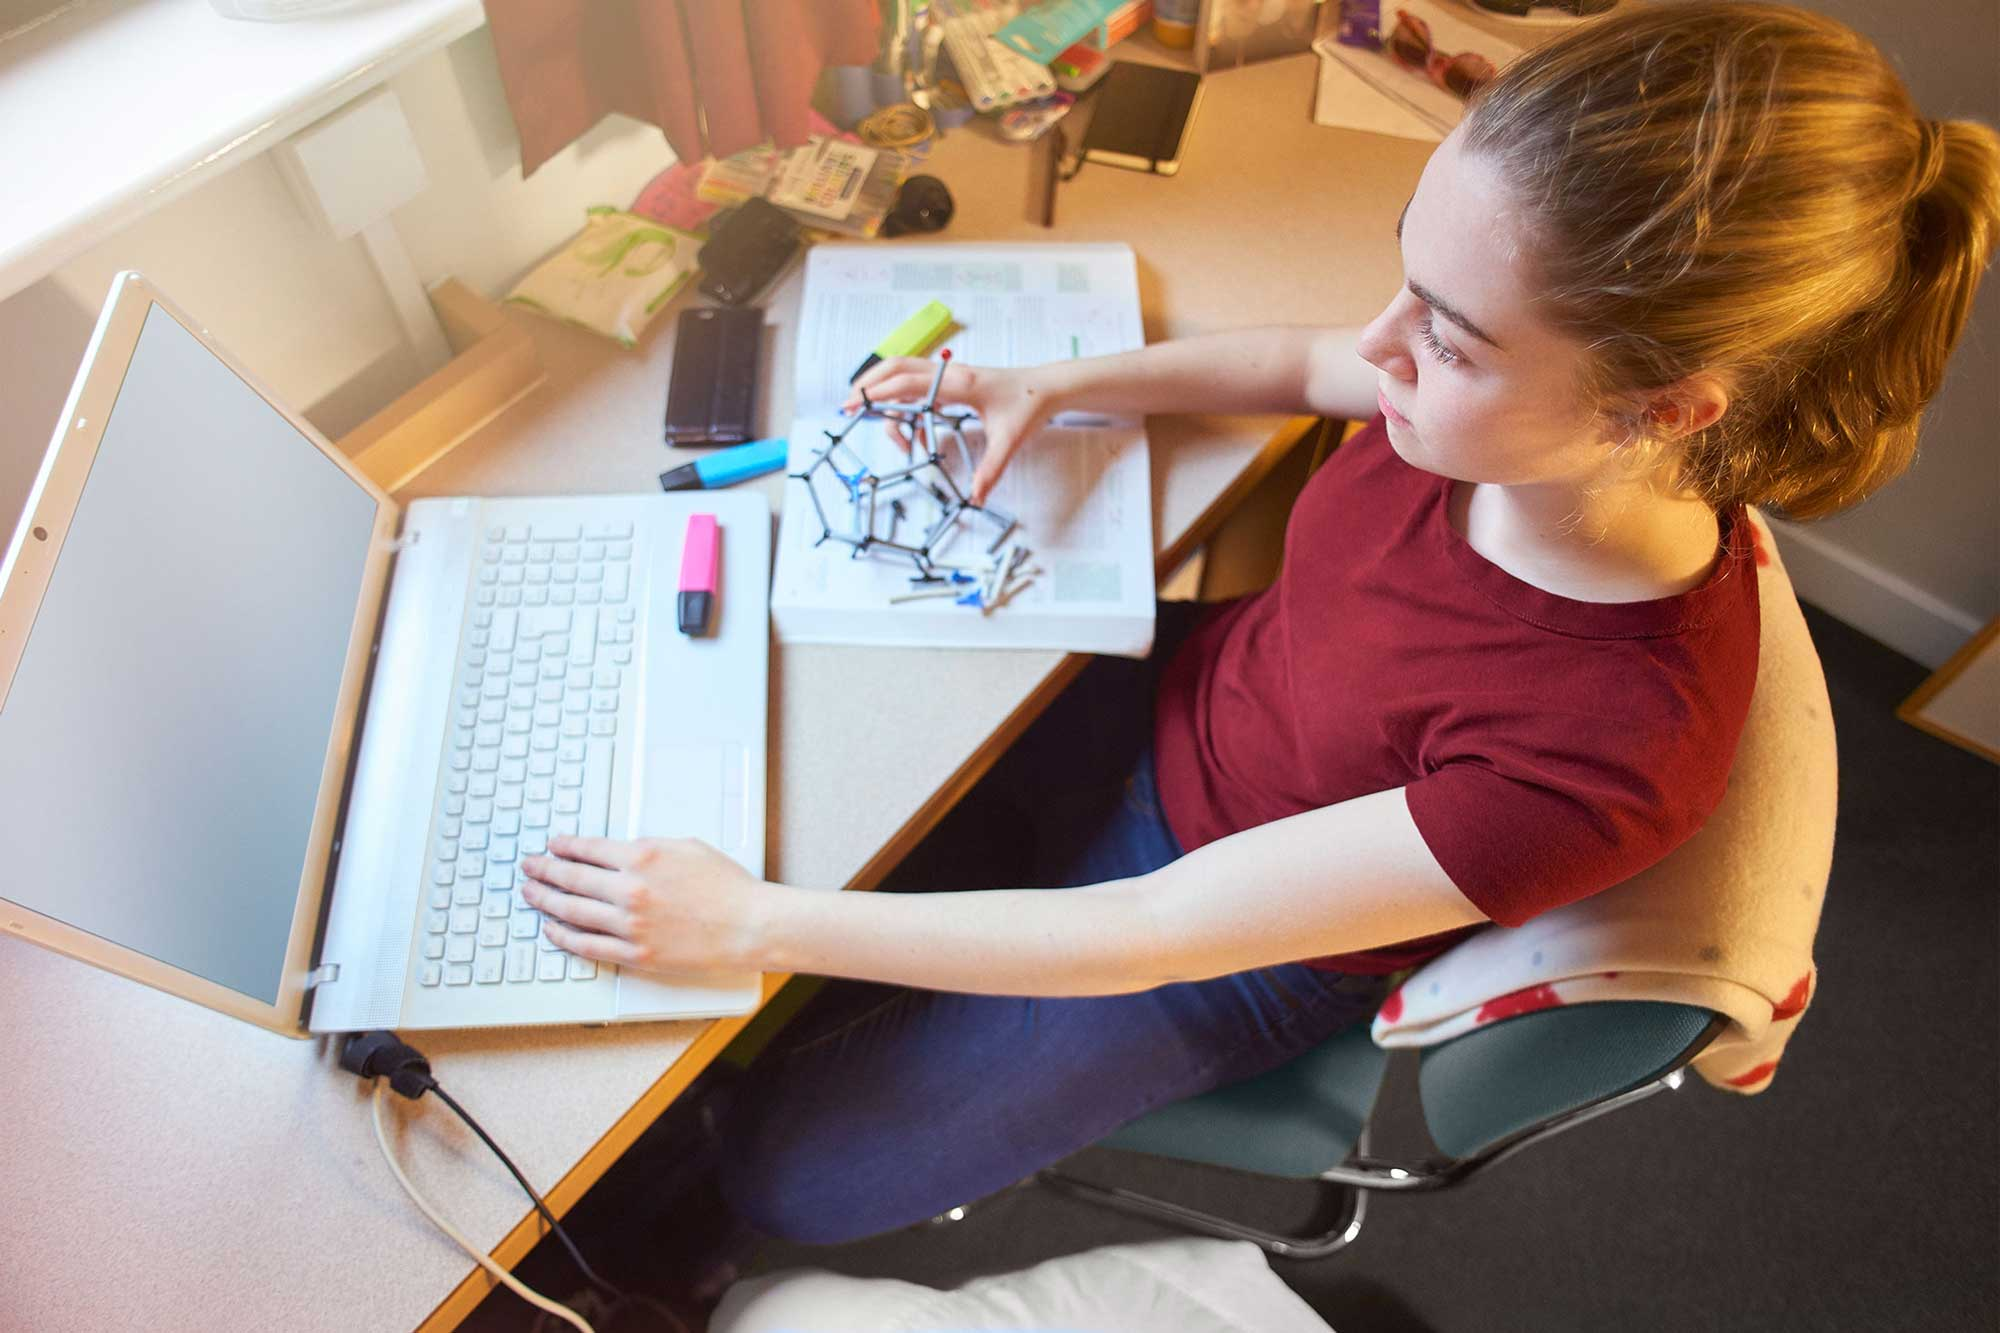 photo - College Student Online Learning from Dorm Room